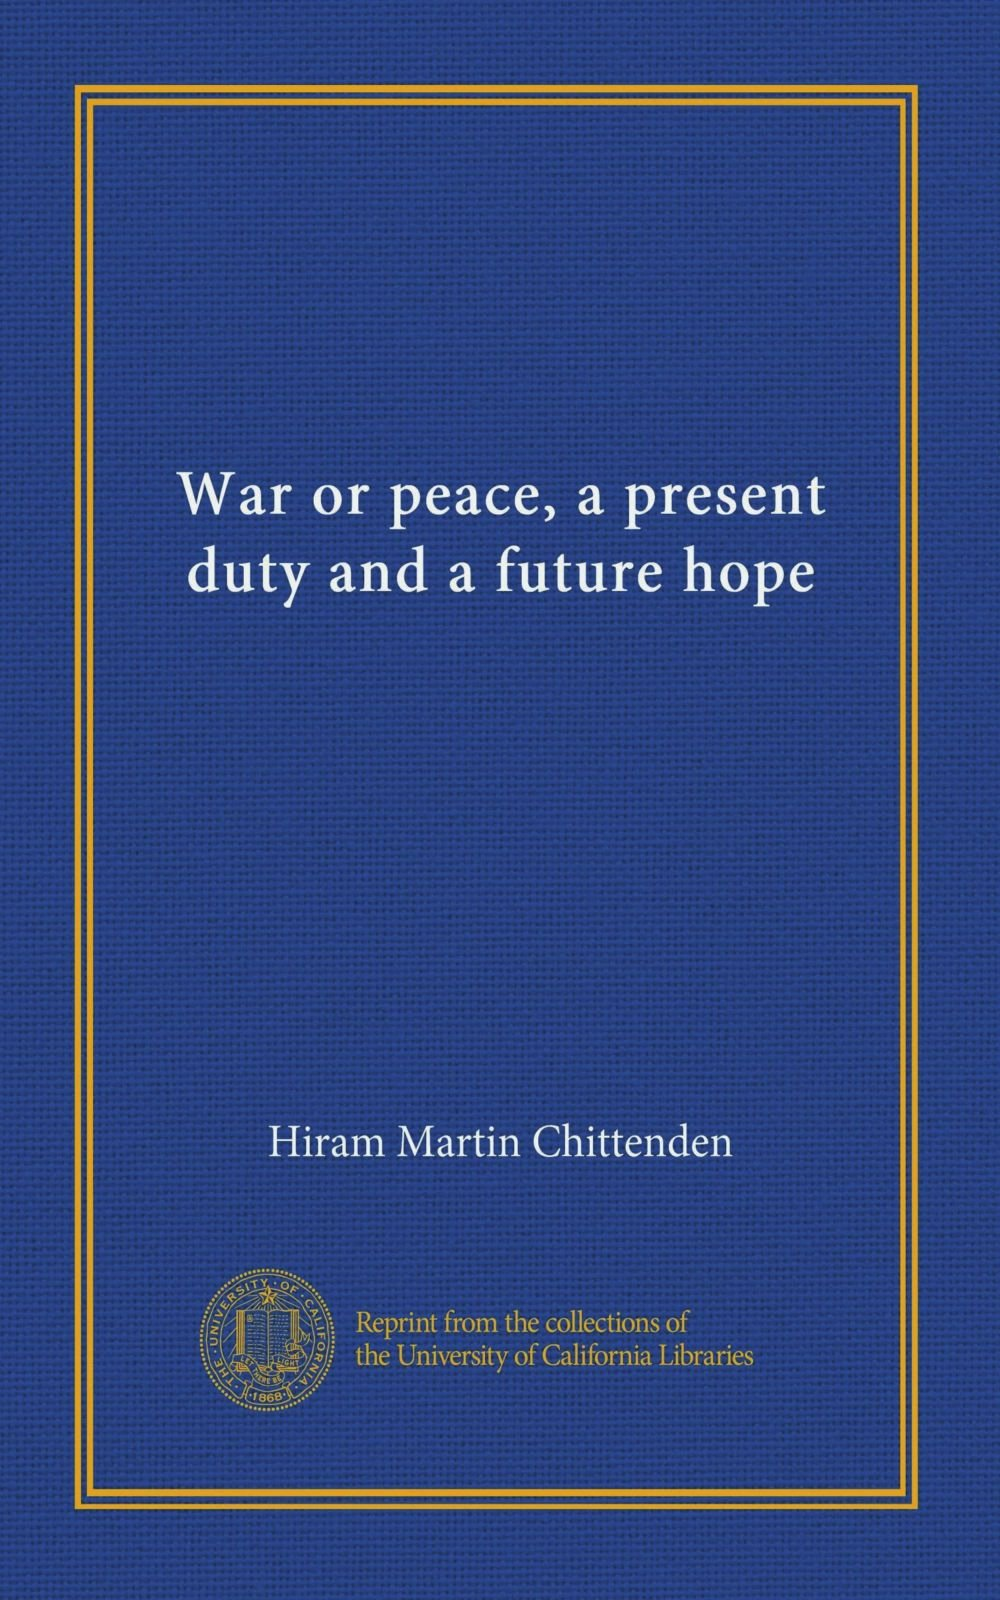 Download War or peace, a present duty and a future hope PDF ePub book